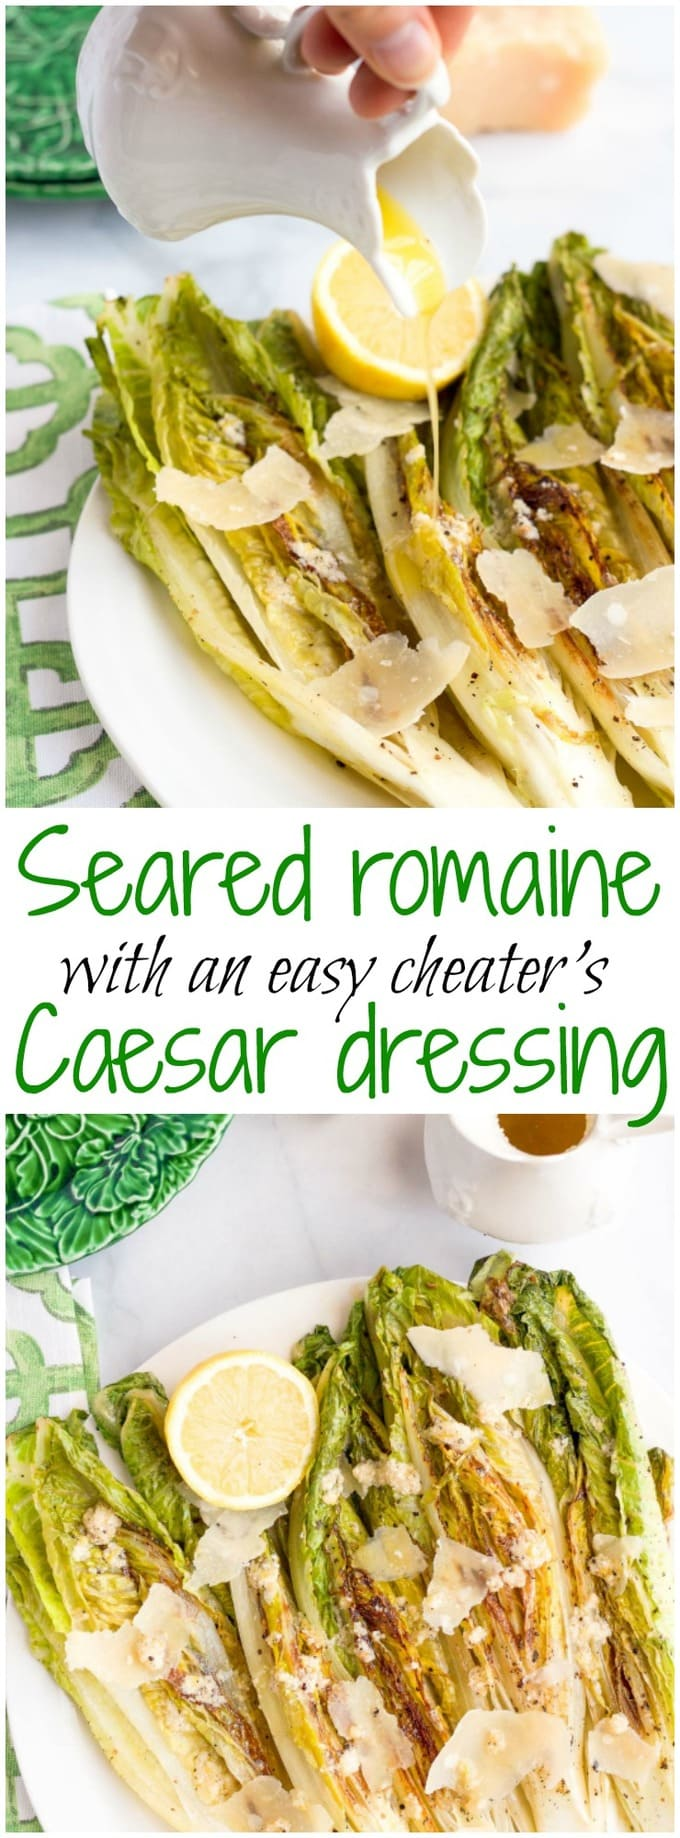 A collage of photos of seared romaine with Caesar dressing and a text box in the middle